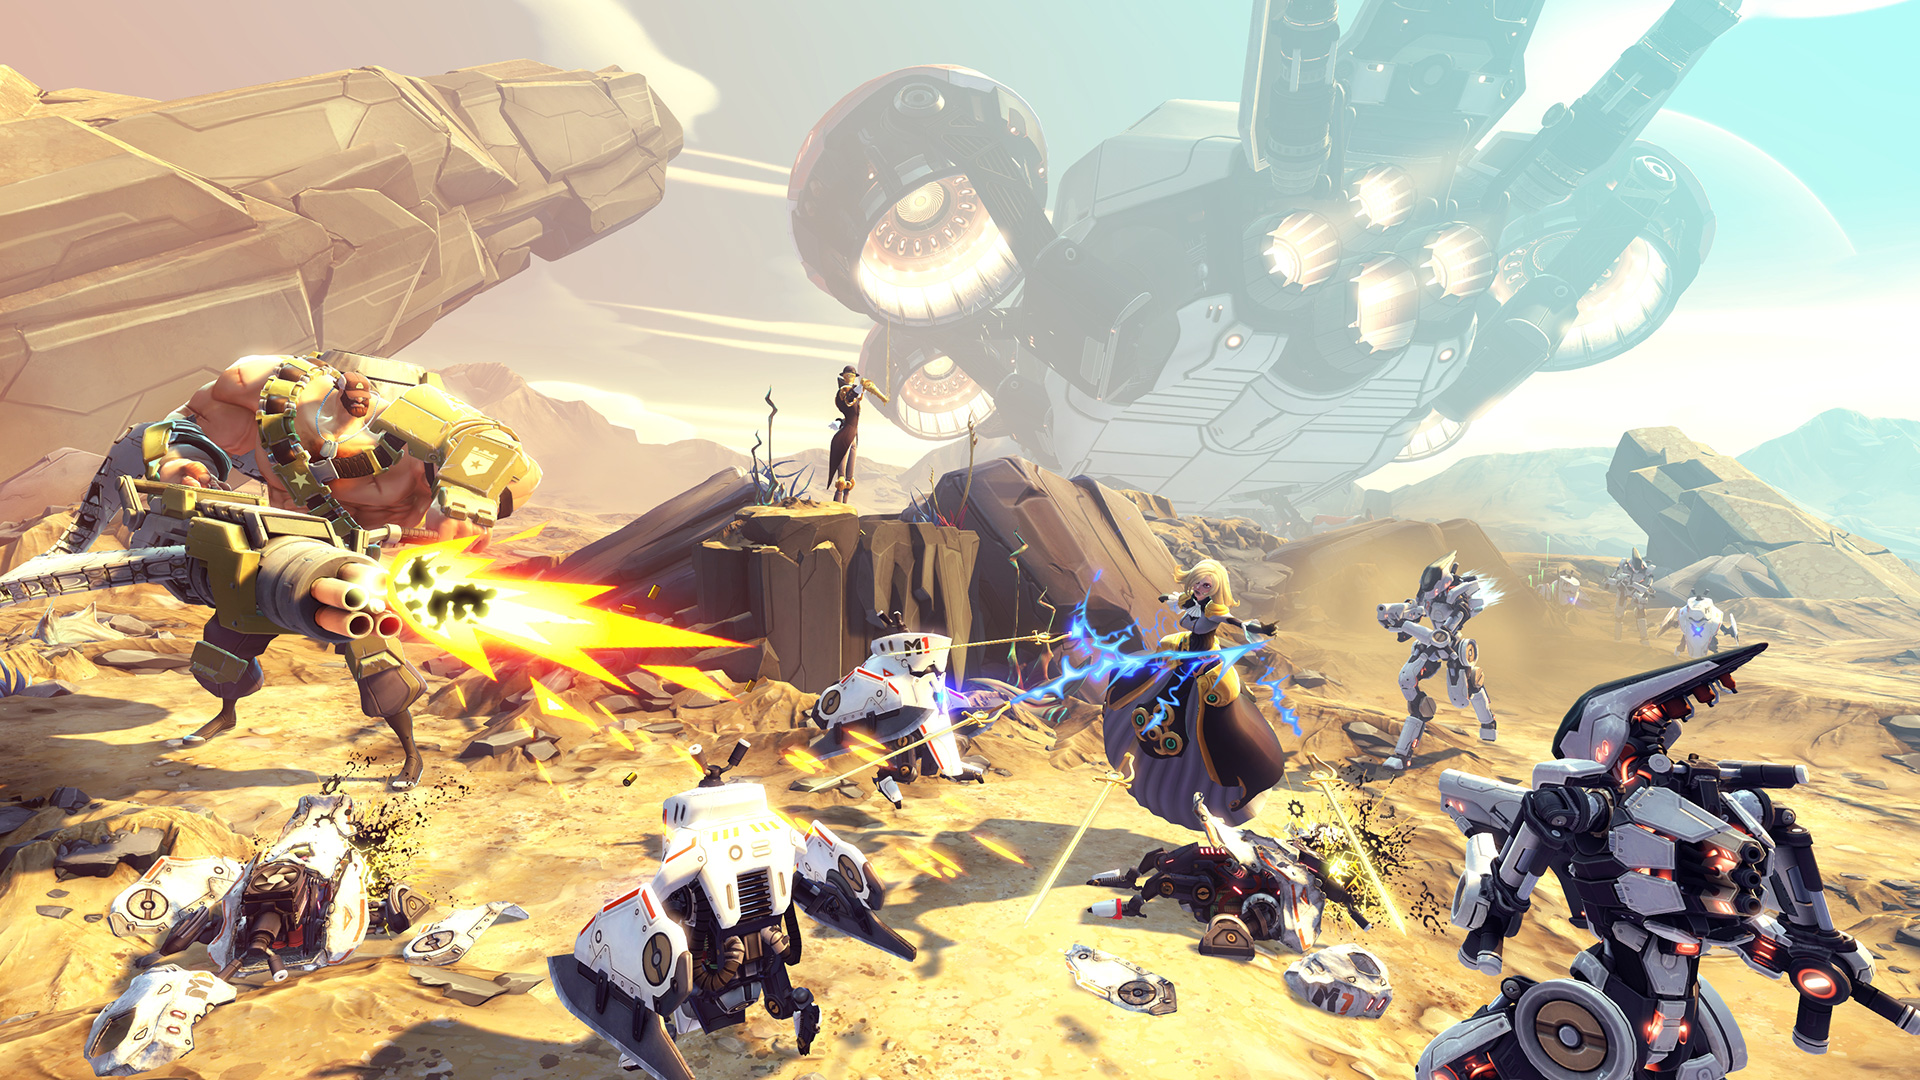 With Battleborn, Gearbox looks to set a new standard for co-op shooters